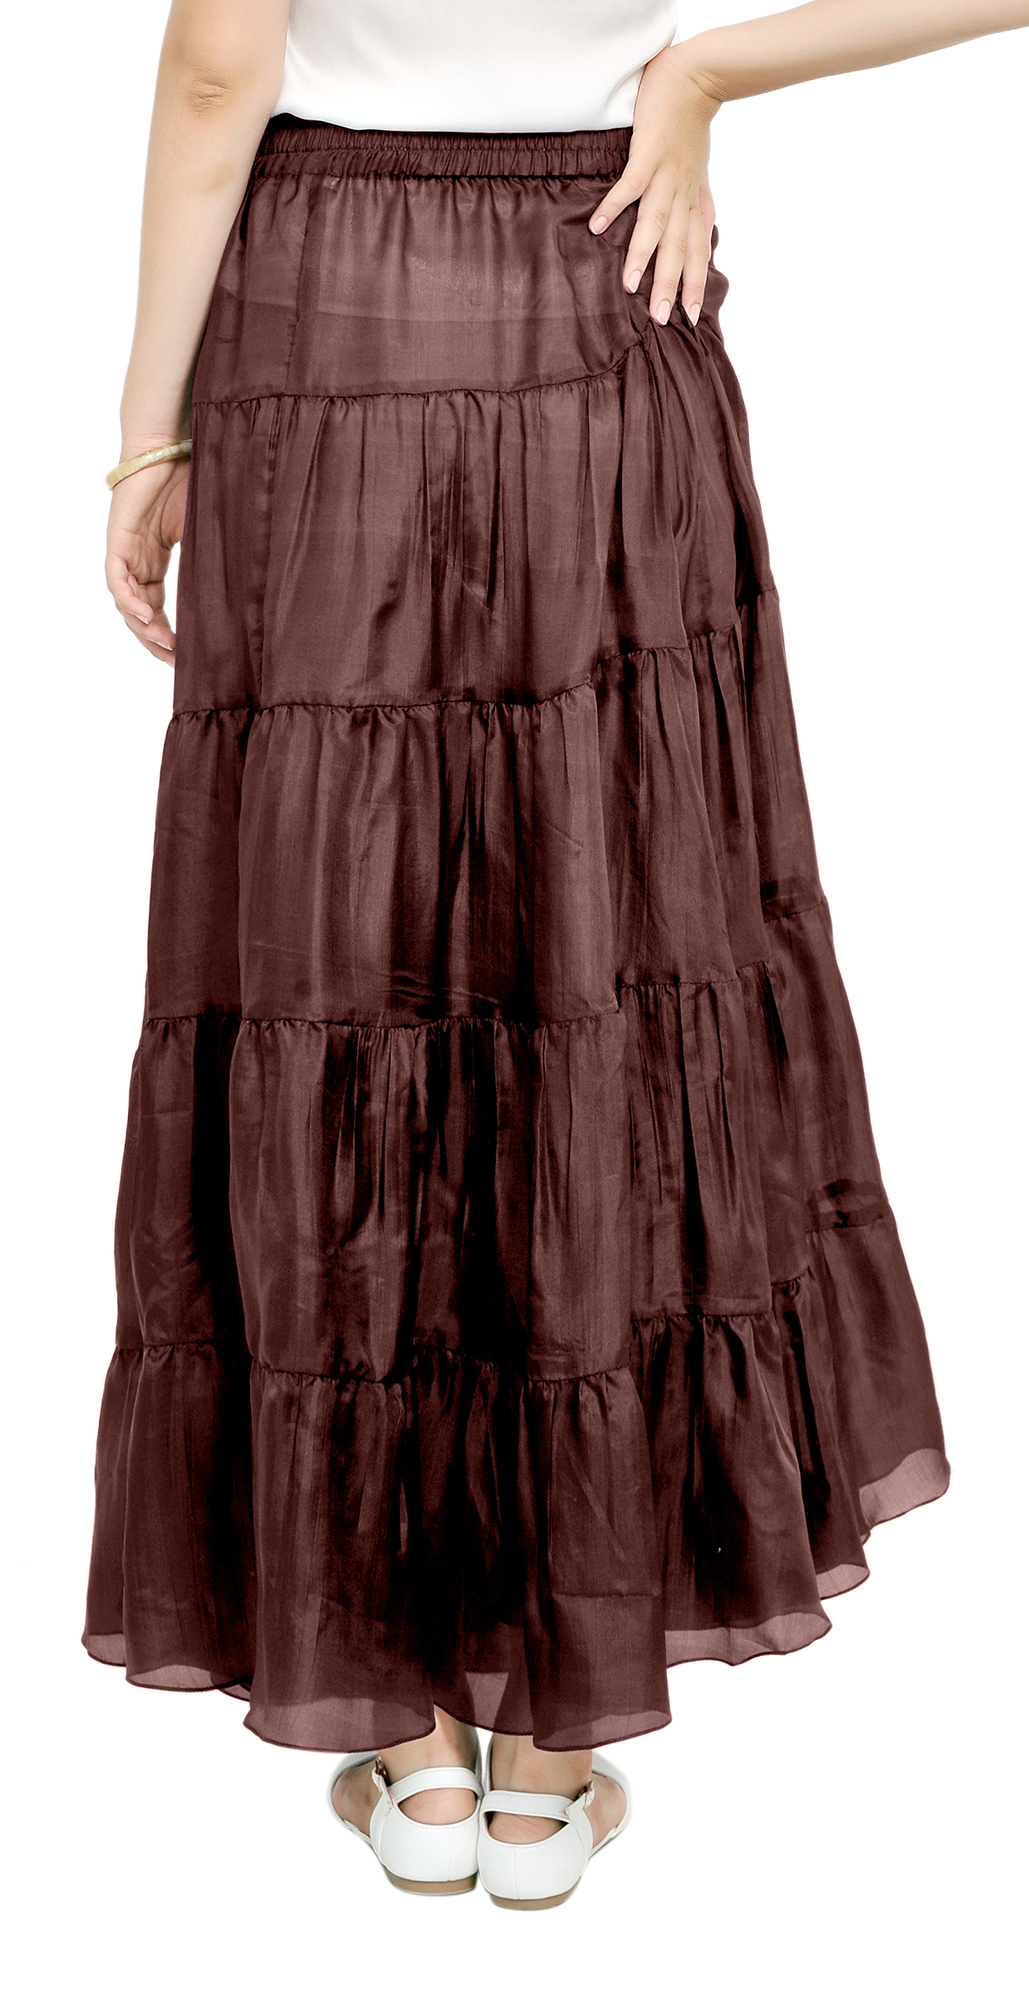 MARYCRAFTS WOMENS SILK MAXI LONG TIERED BOHEMIAN BOHO GYPSY BROOMSTICK SKIRTS | eBay